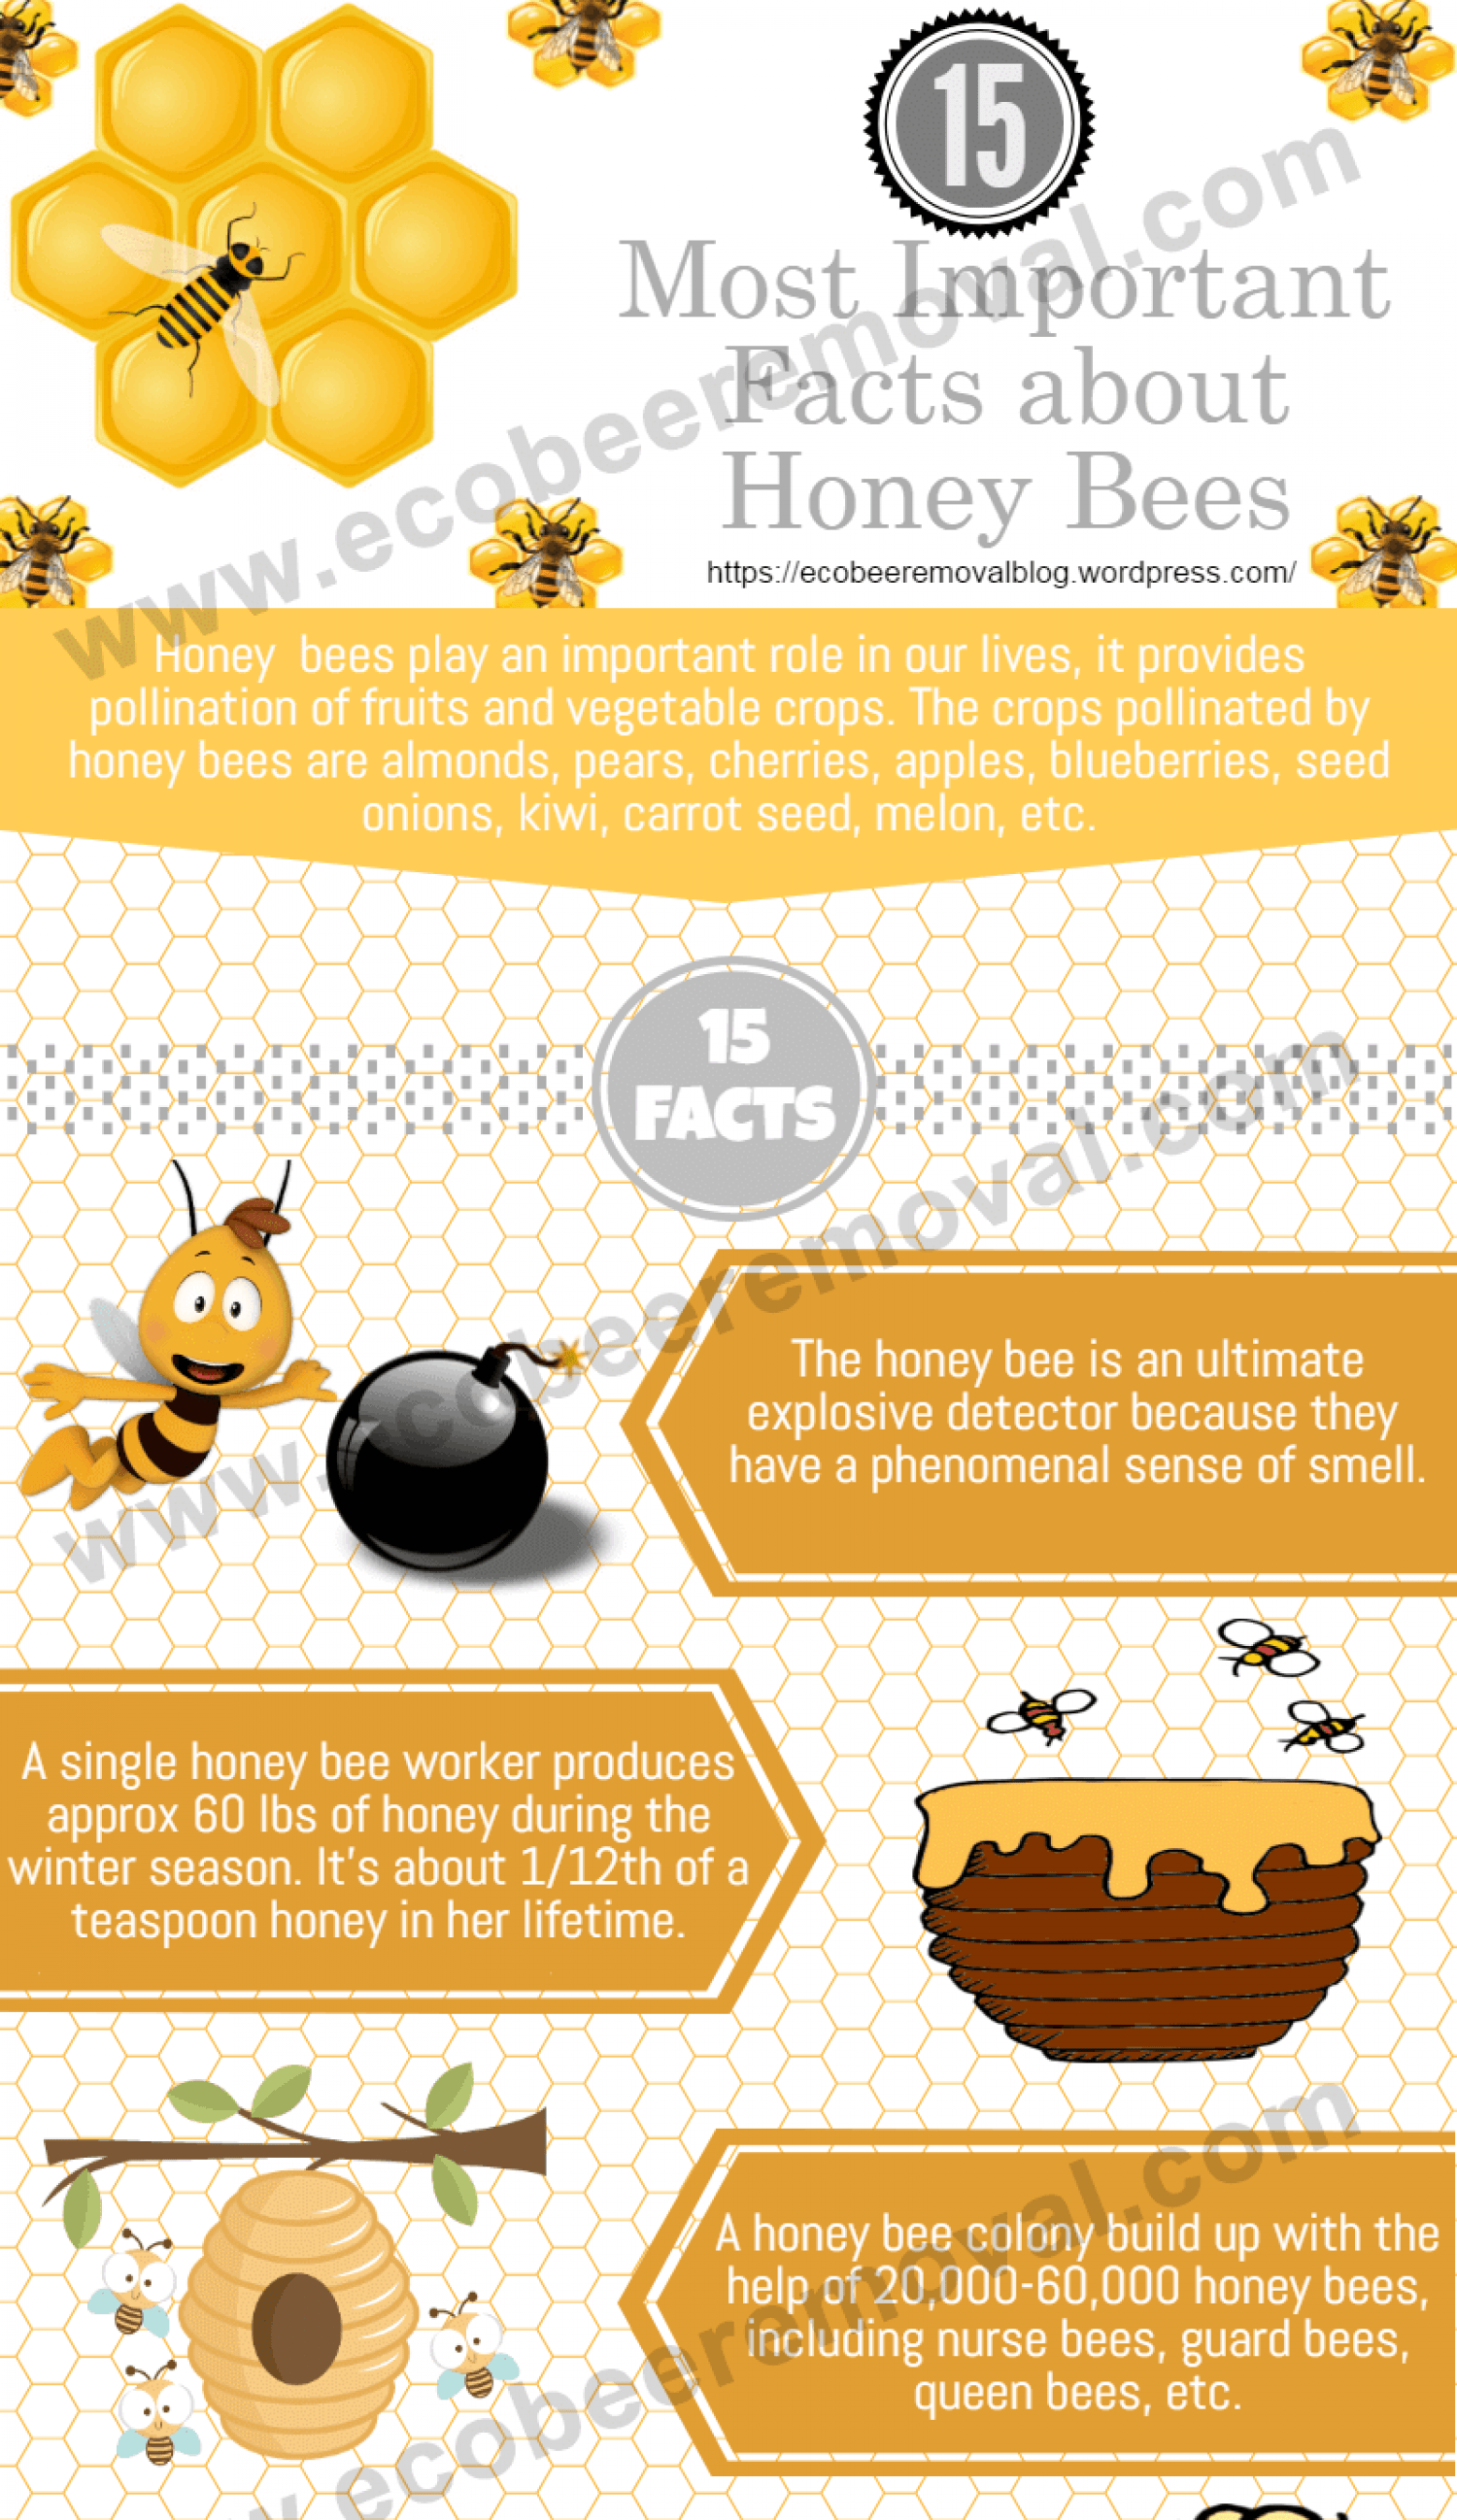 Know Some Important Facts About Honey Bees